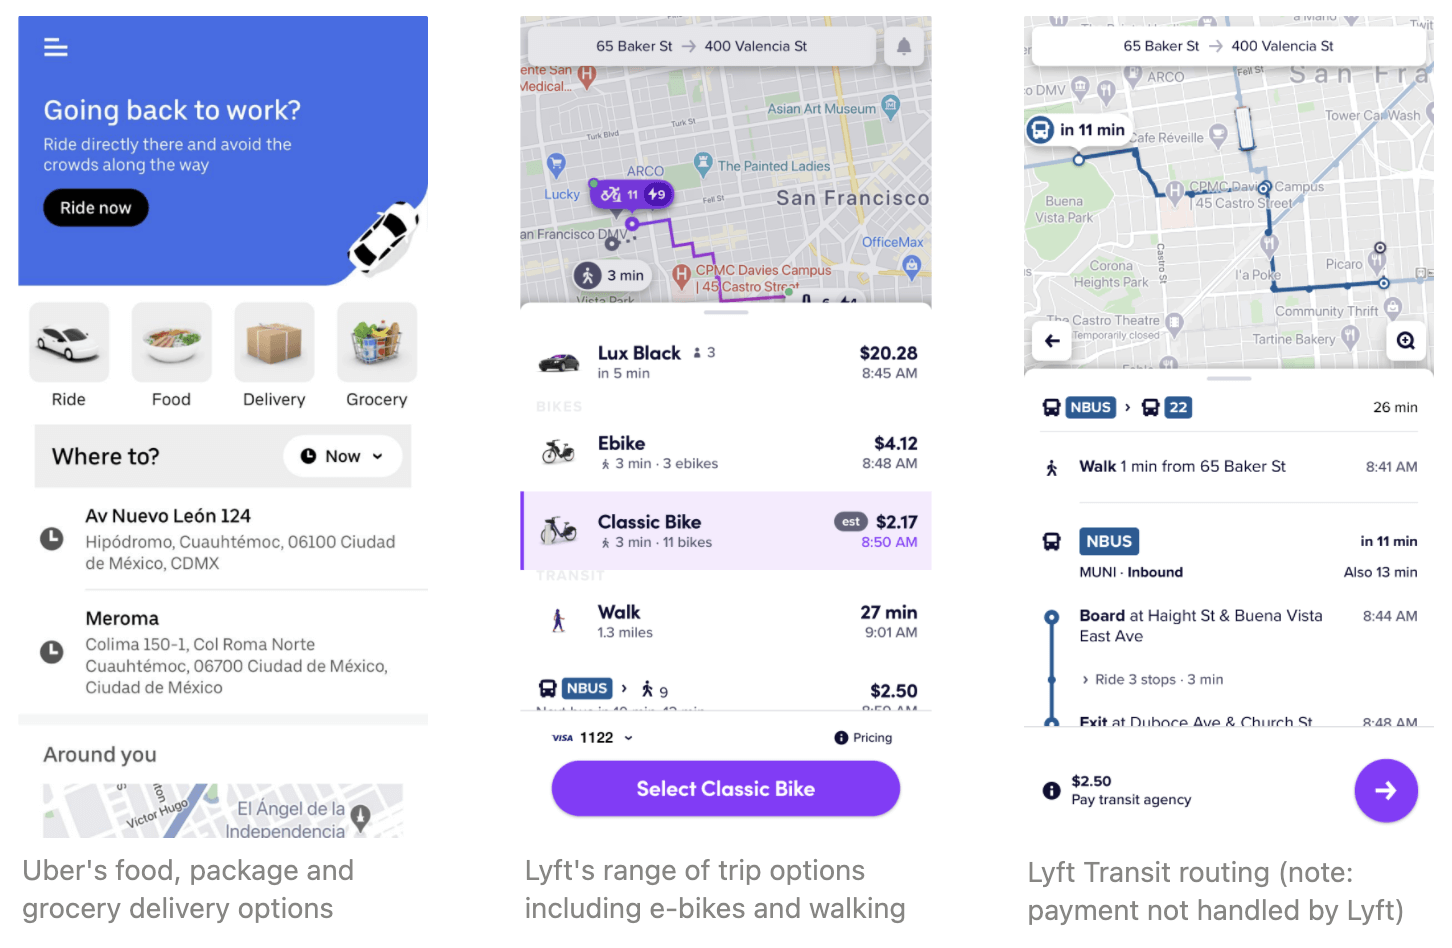 Three screenshots: 1) Uber's food, package and grocery delivery options; 2) Lyft's range of trip options including e-bikes and walking; 3) Lyft Transit routing (noting that trip payment not handled by Lyft)